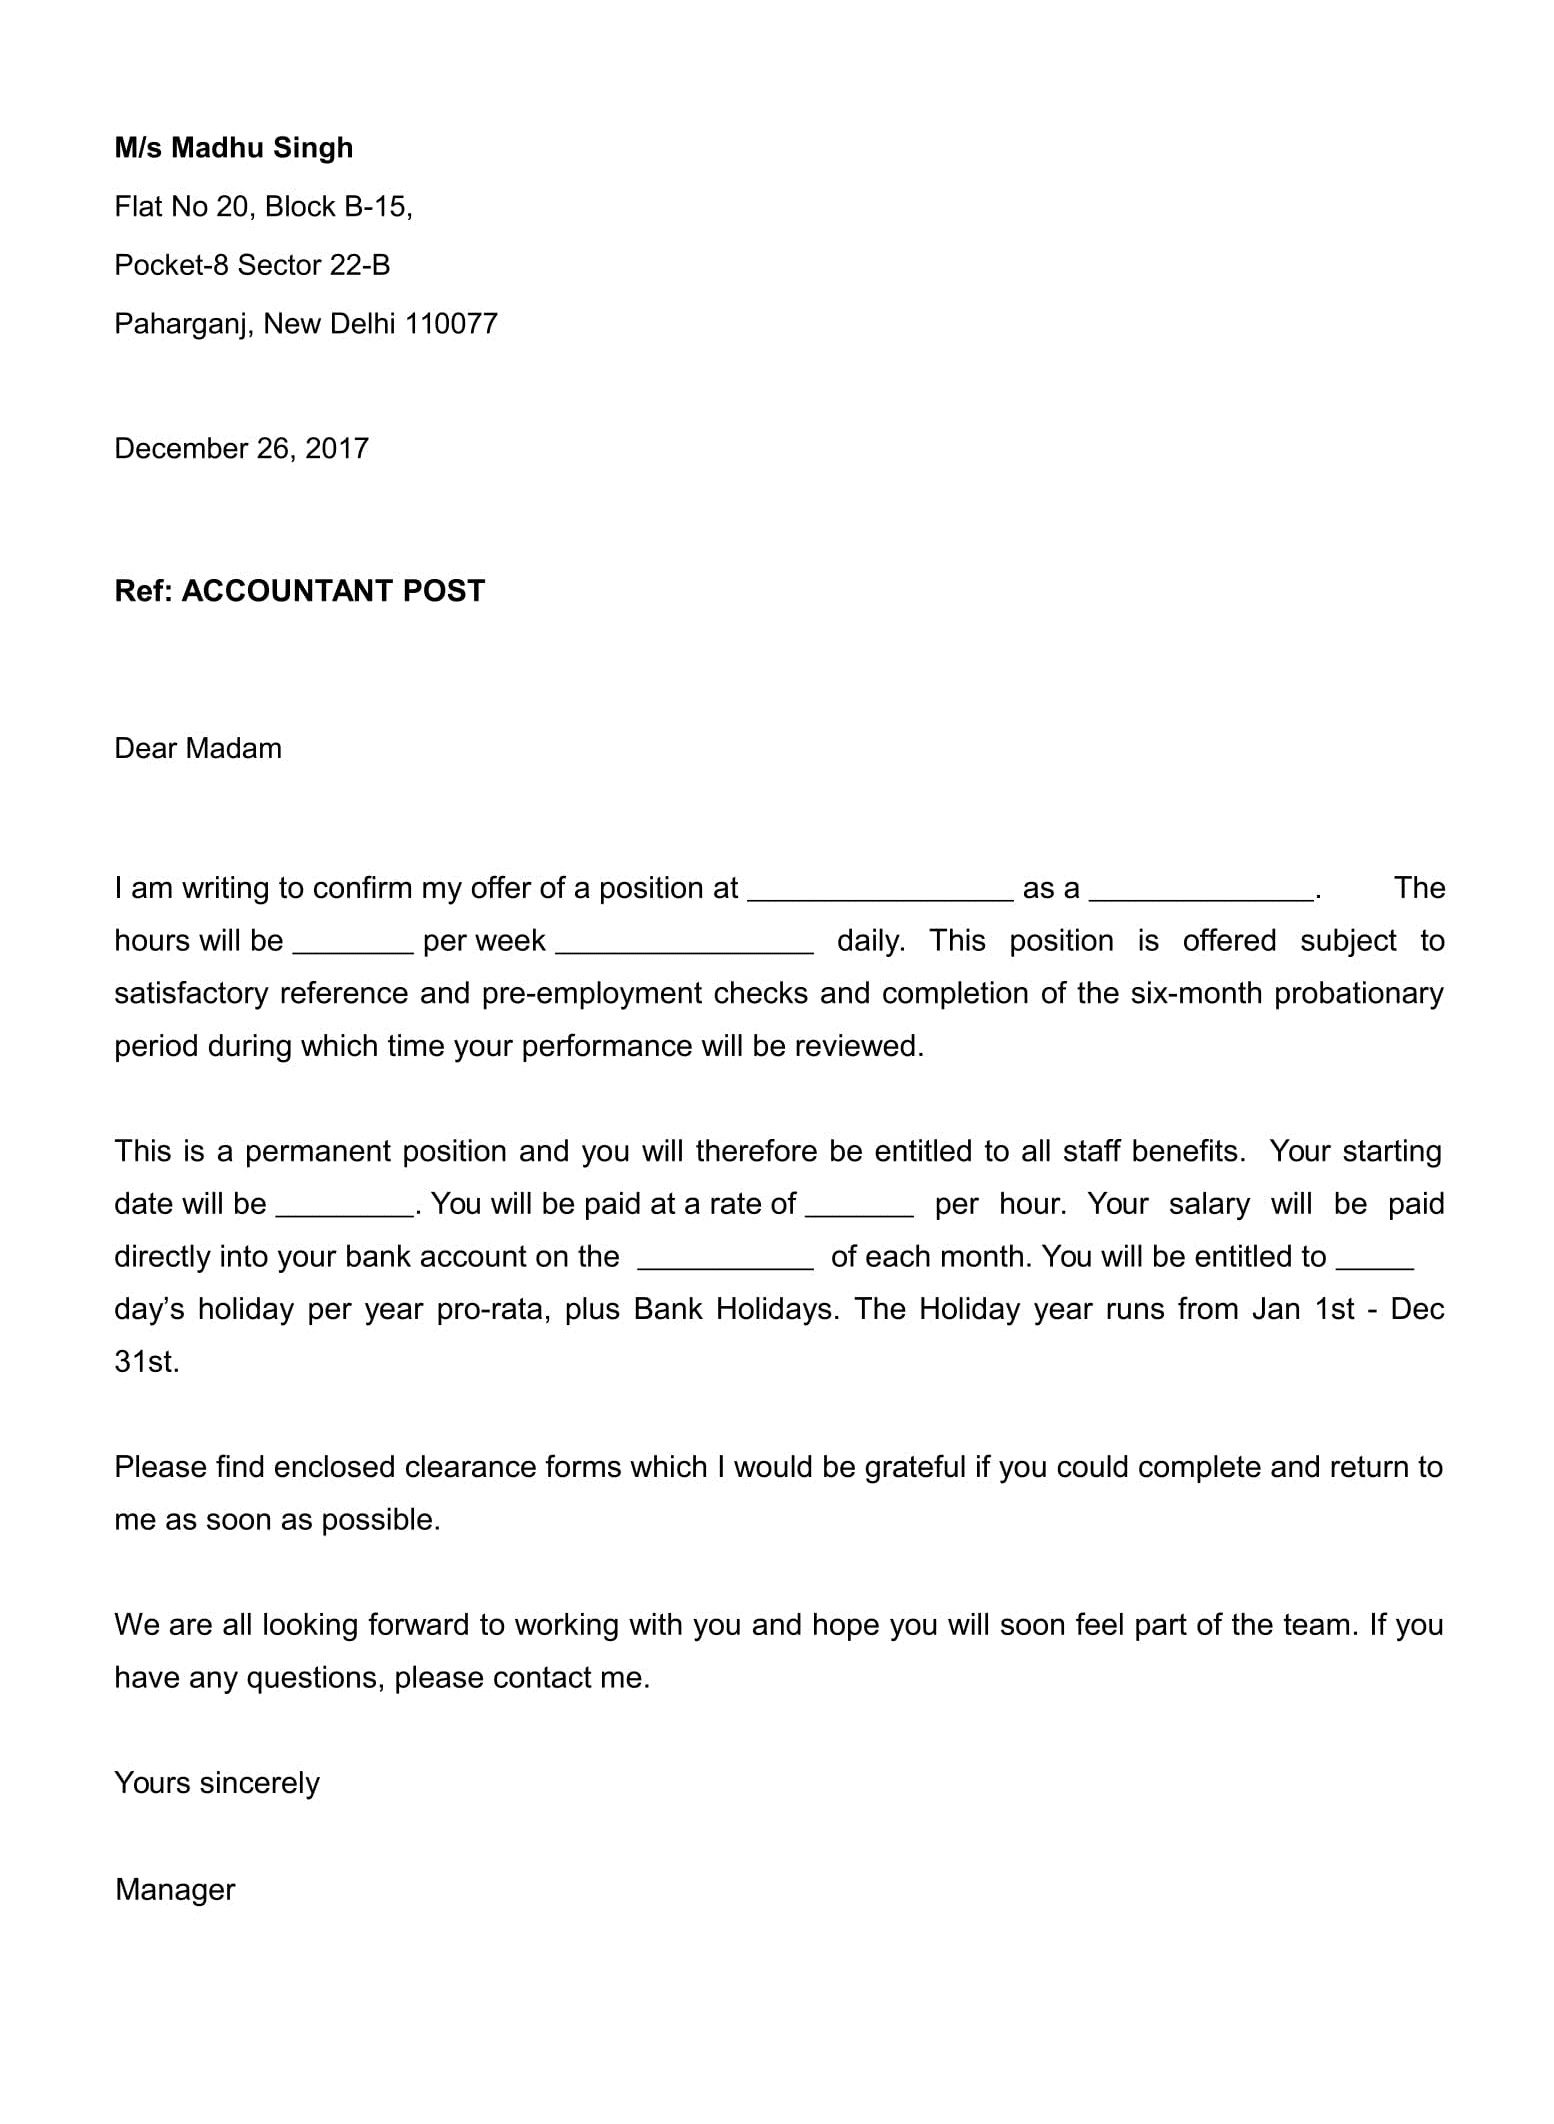 Offer Letters Amp Appointment Letter Job And Business